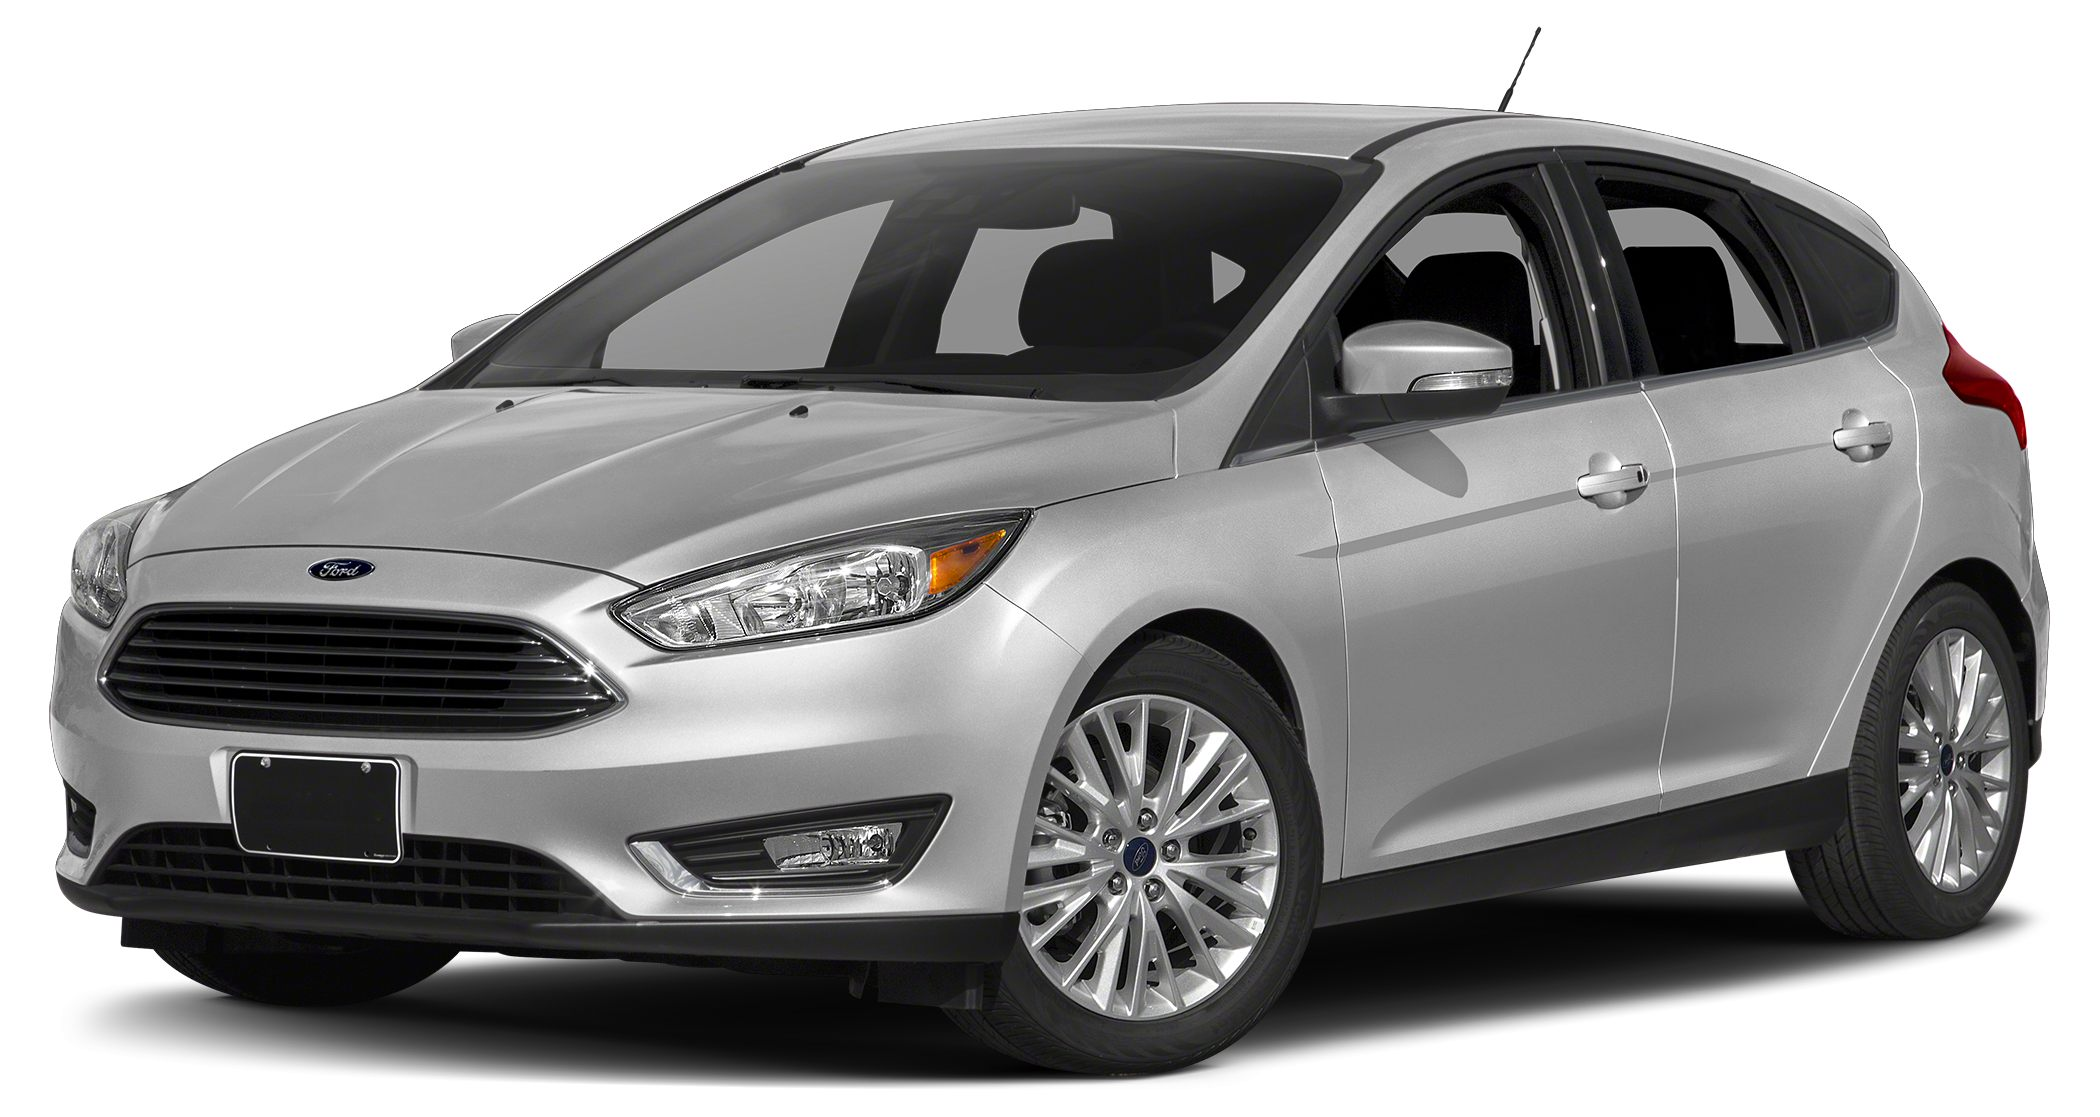 2016 Ford Focus Titanium It only takes a glance to see the 2016 Ford Focus dynamic new look One